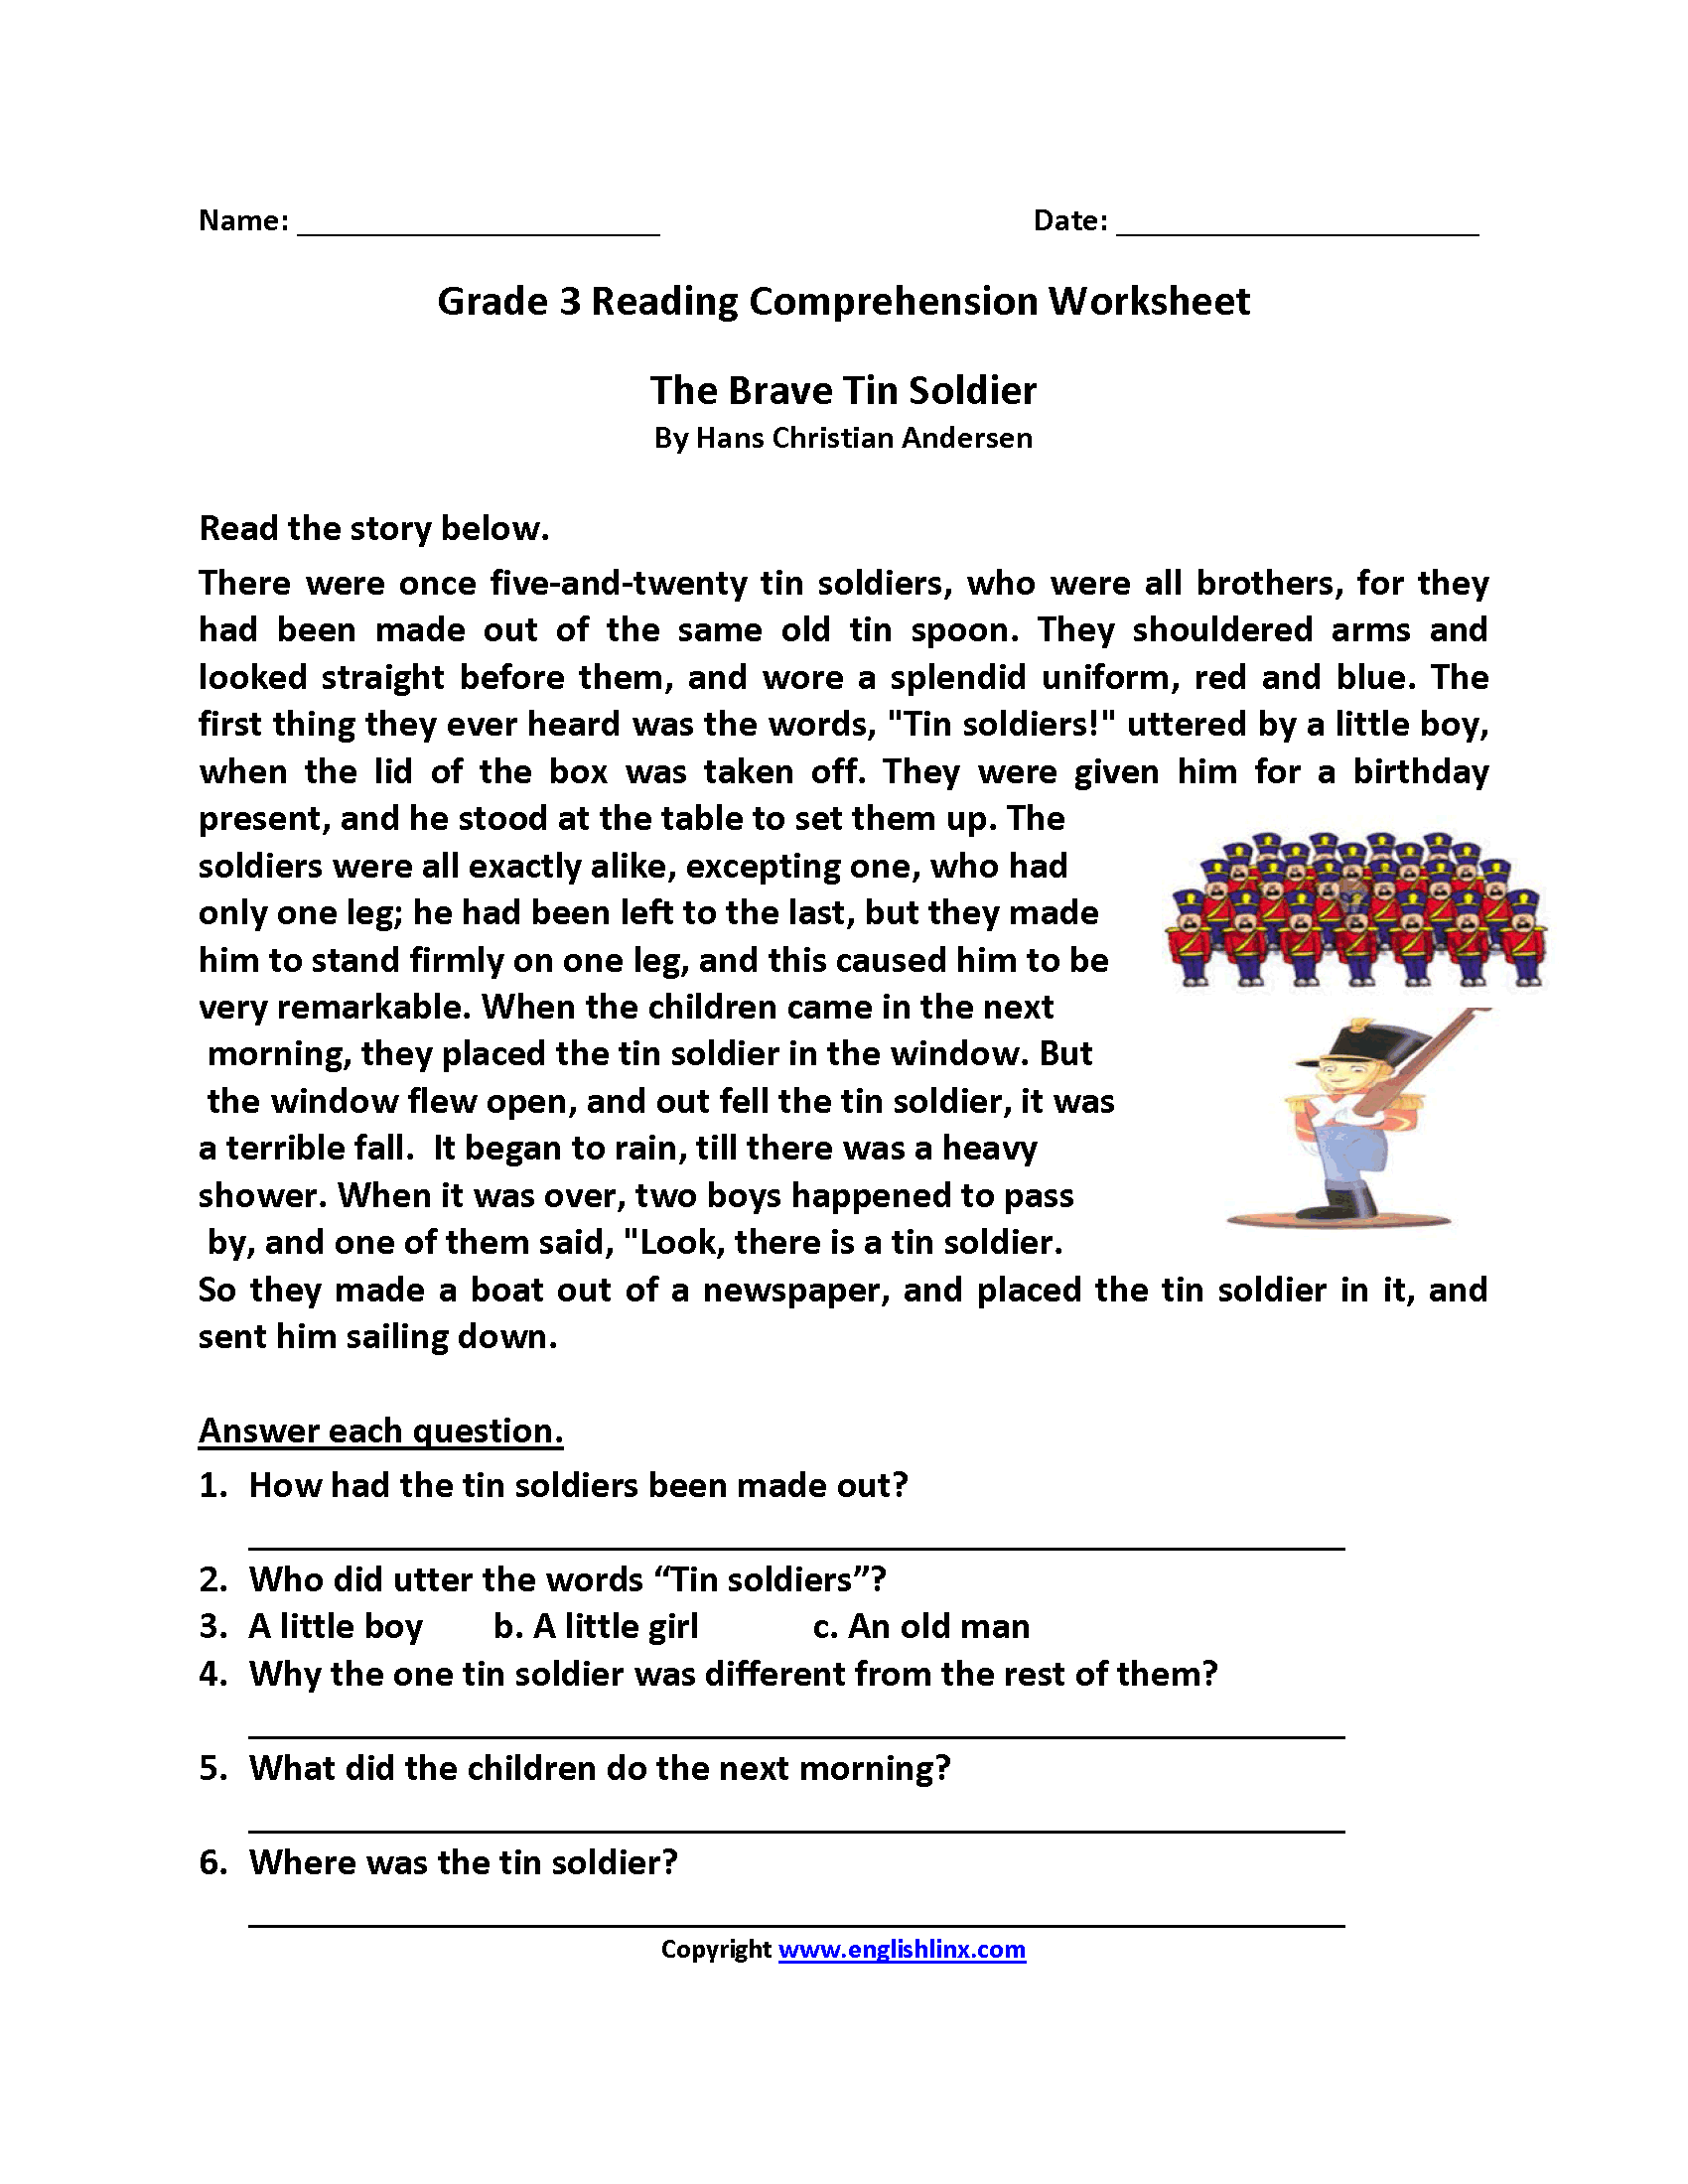 Worksheets Free Reading Comprehension Worksheets For 3rd Grade reading worksheets third grade worksheets